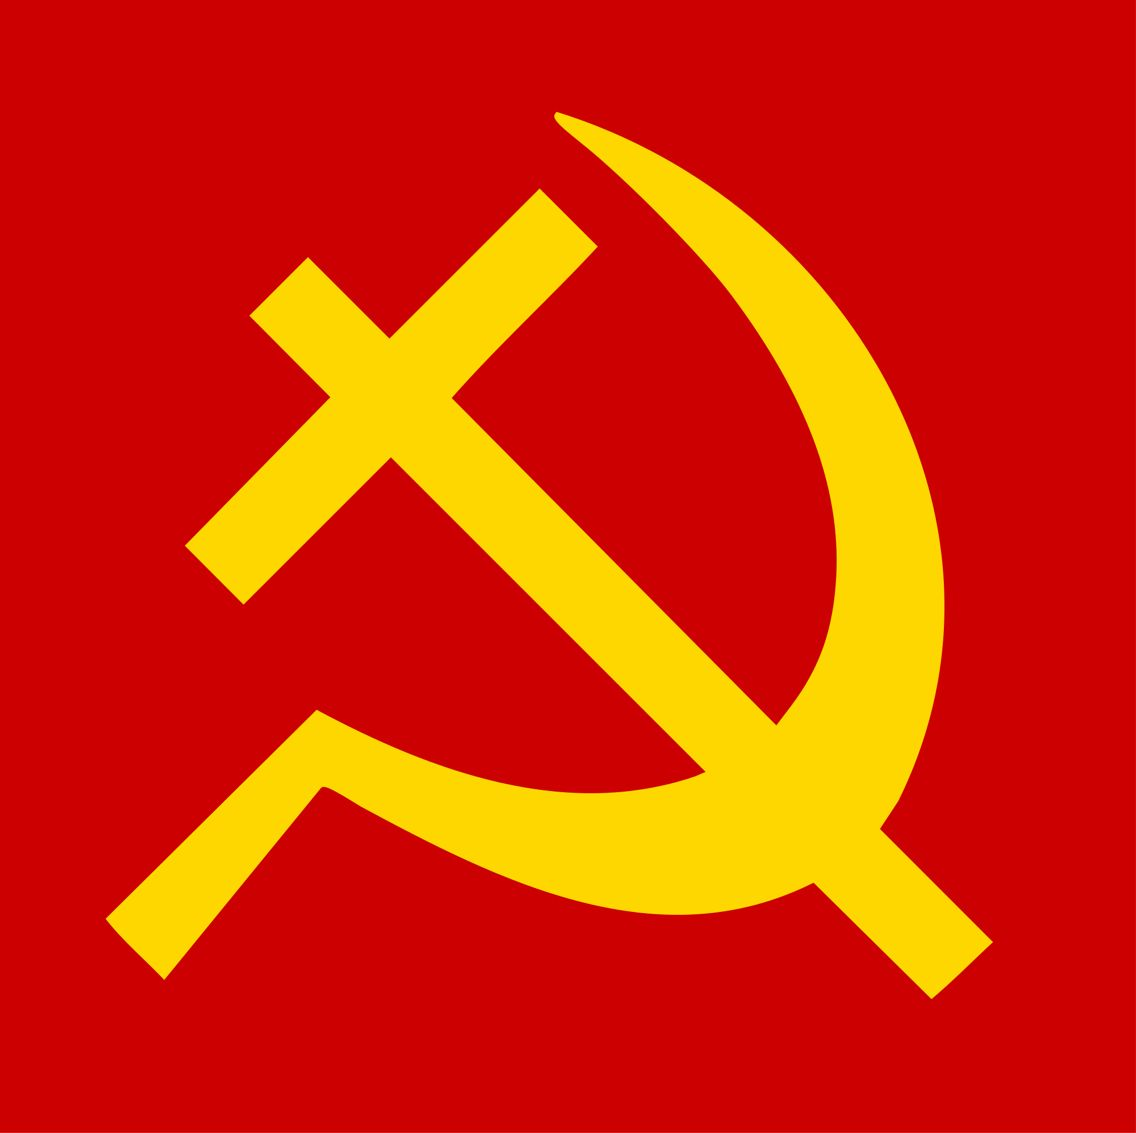 communism this is one example of communism this is the symbol of communism this is one example of communism this is the symbol of the soviet